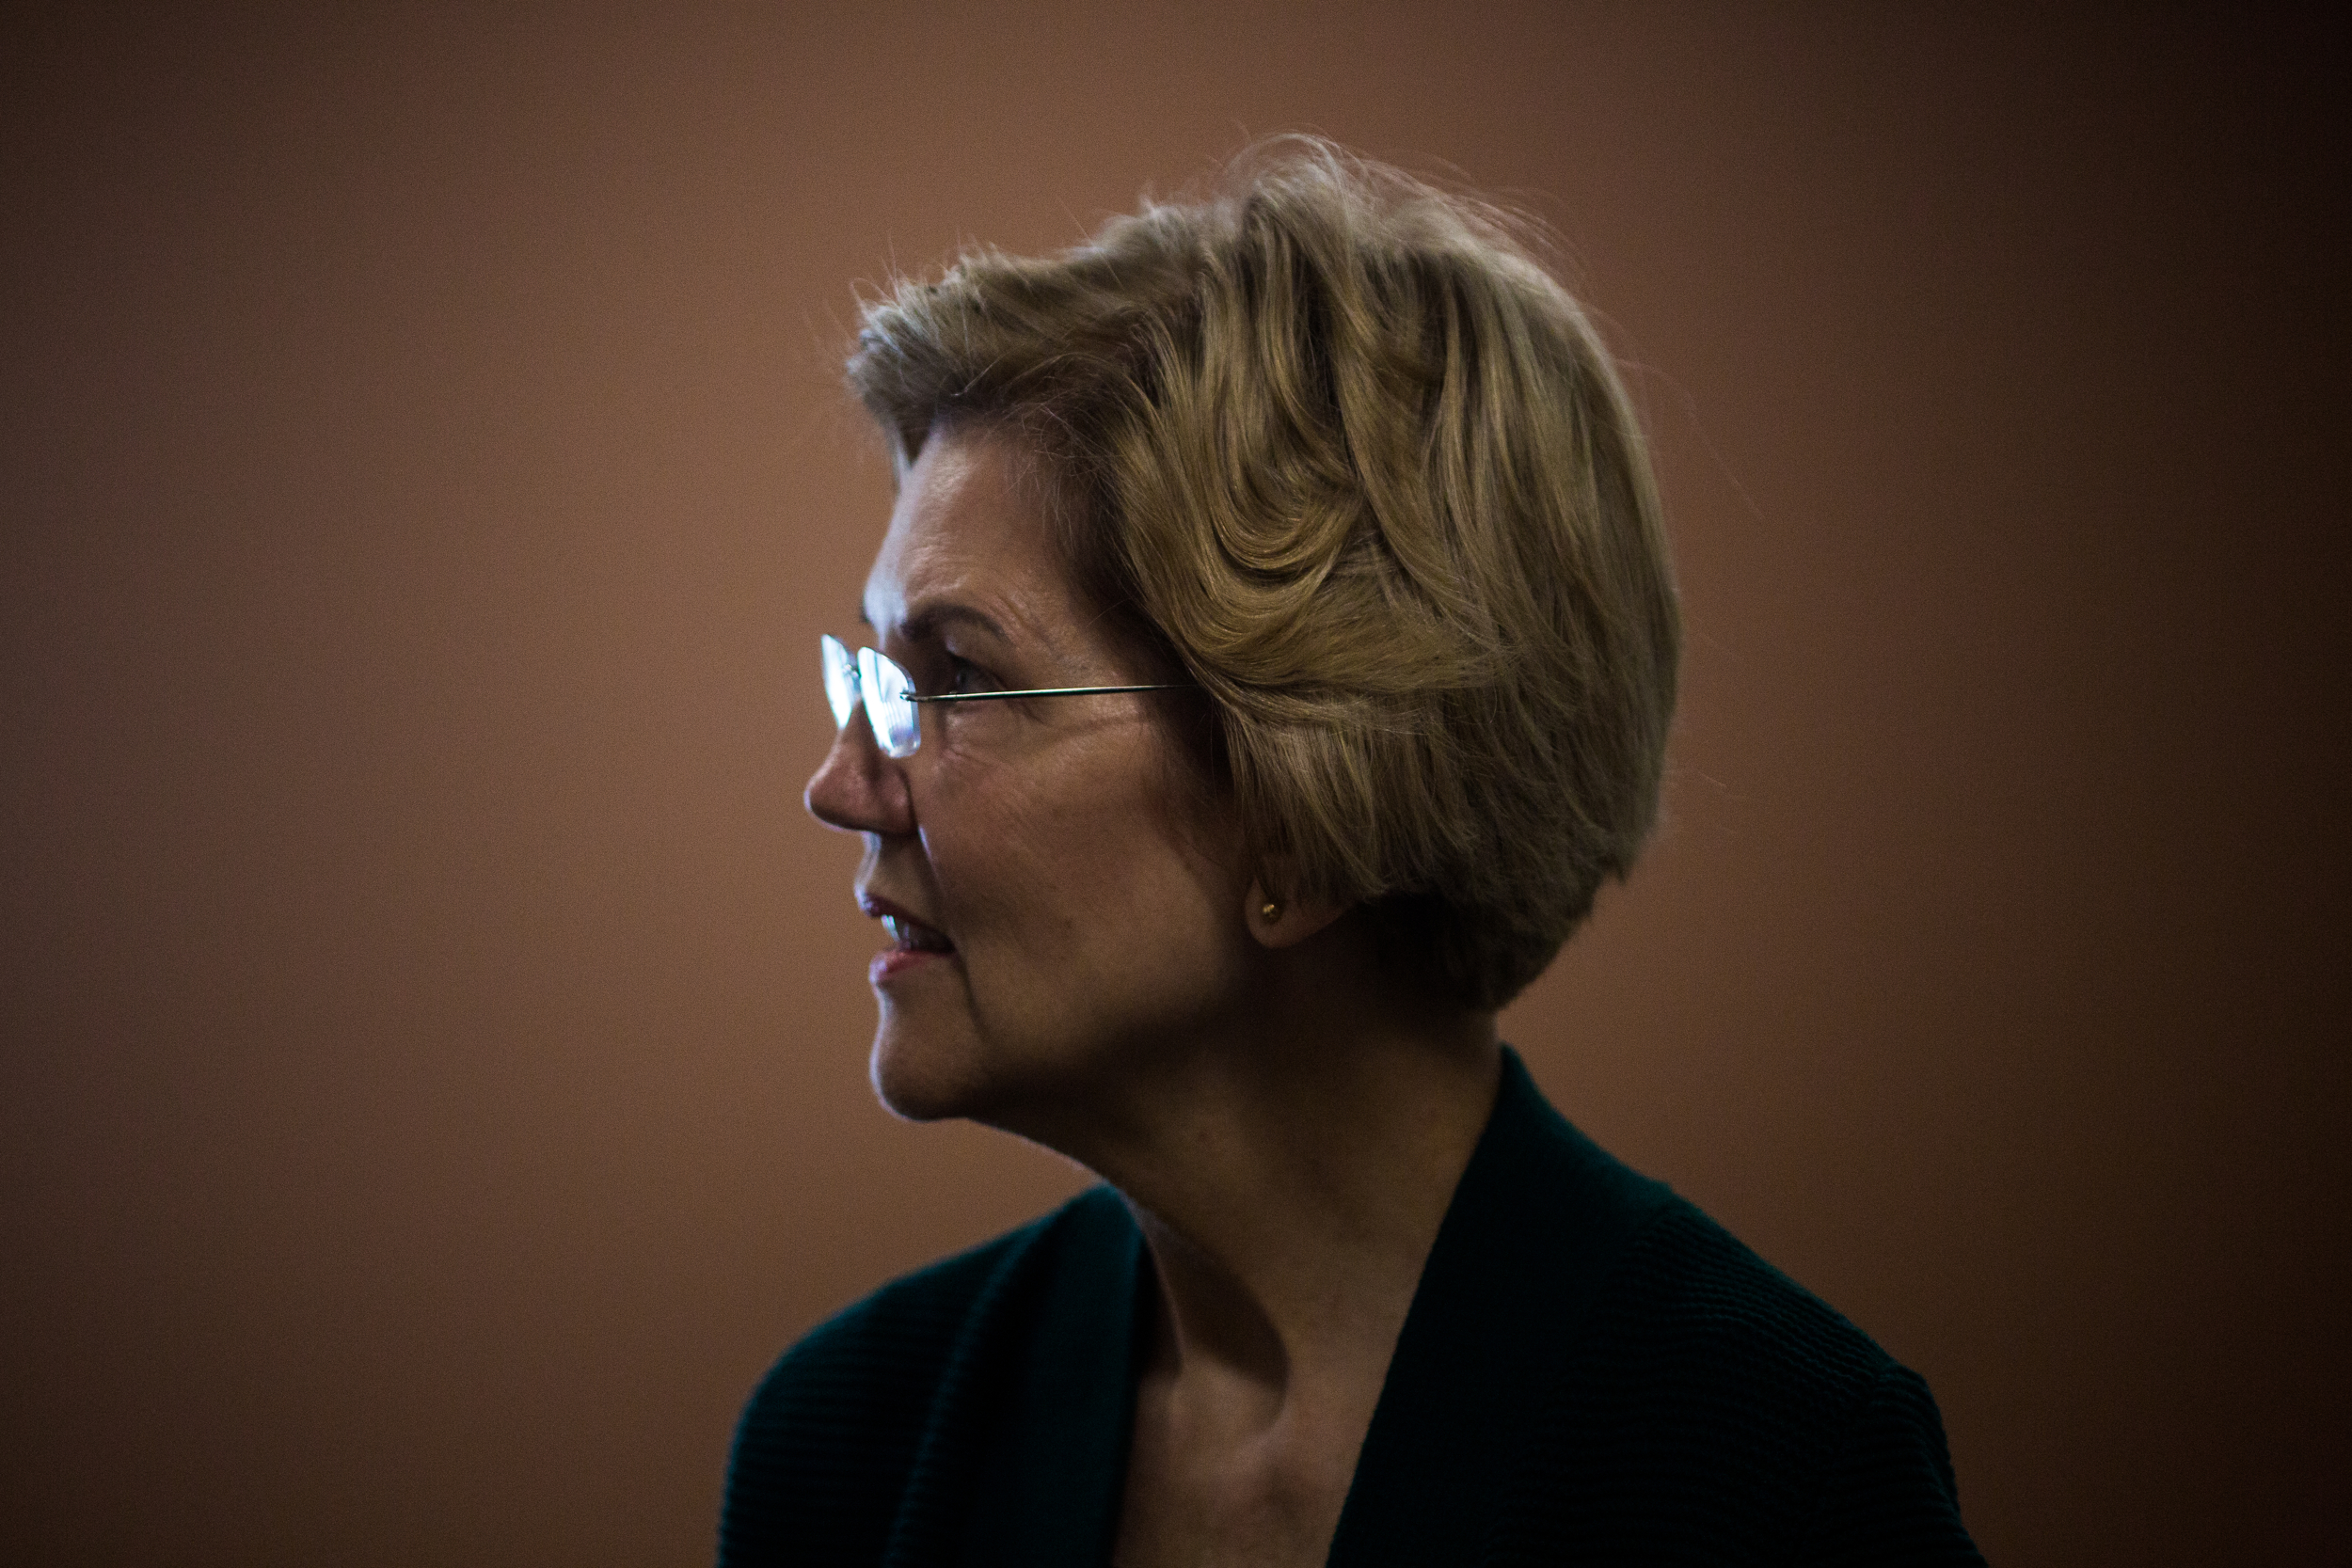 Senator Elizabeth Warren of Massachusetts visits the Friendship House, a recently renovated 28-bed substance abuse center in Bethlehem, New Hampshire on Saturday afternoon, March 23, 2019. Warren traveled to New Hampshire to hold several campaign stops including 'Community Conversations with Elizabeth Warren on the Opioid Crisis' at the Littleton High School in Littleton, New Hampshire. According to the National Institute on Drug Abuse, New Hampshire is second in the country for highest opioid-related overdose deaths. The U.S. Department of Health and Human Services recently announced New Hampshire will be allocated an additional $12 million to combat the crisis.